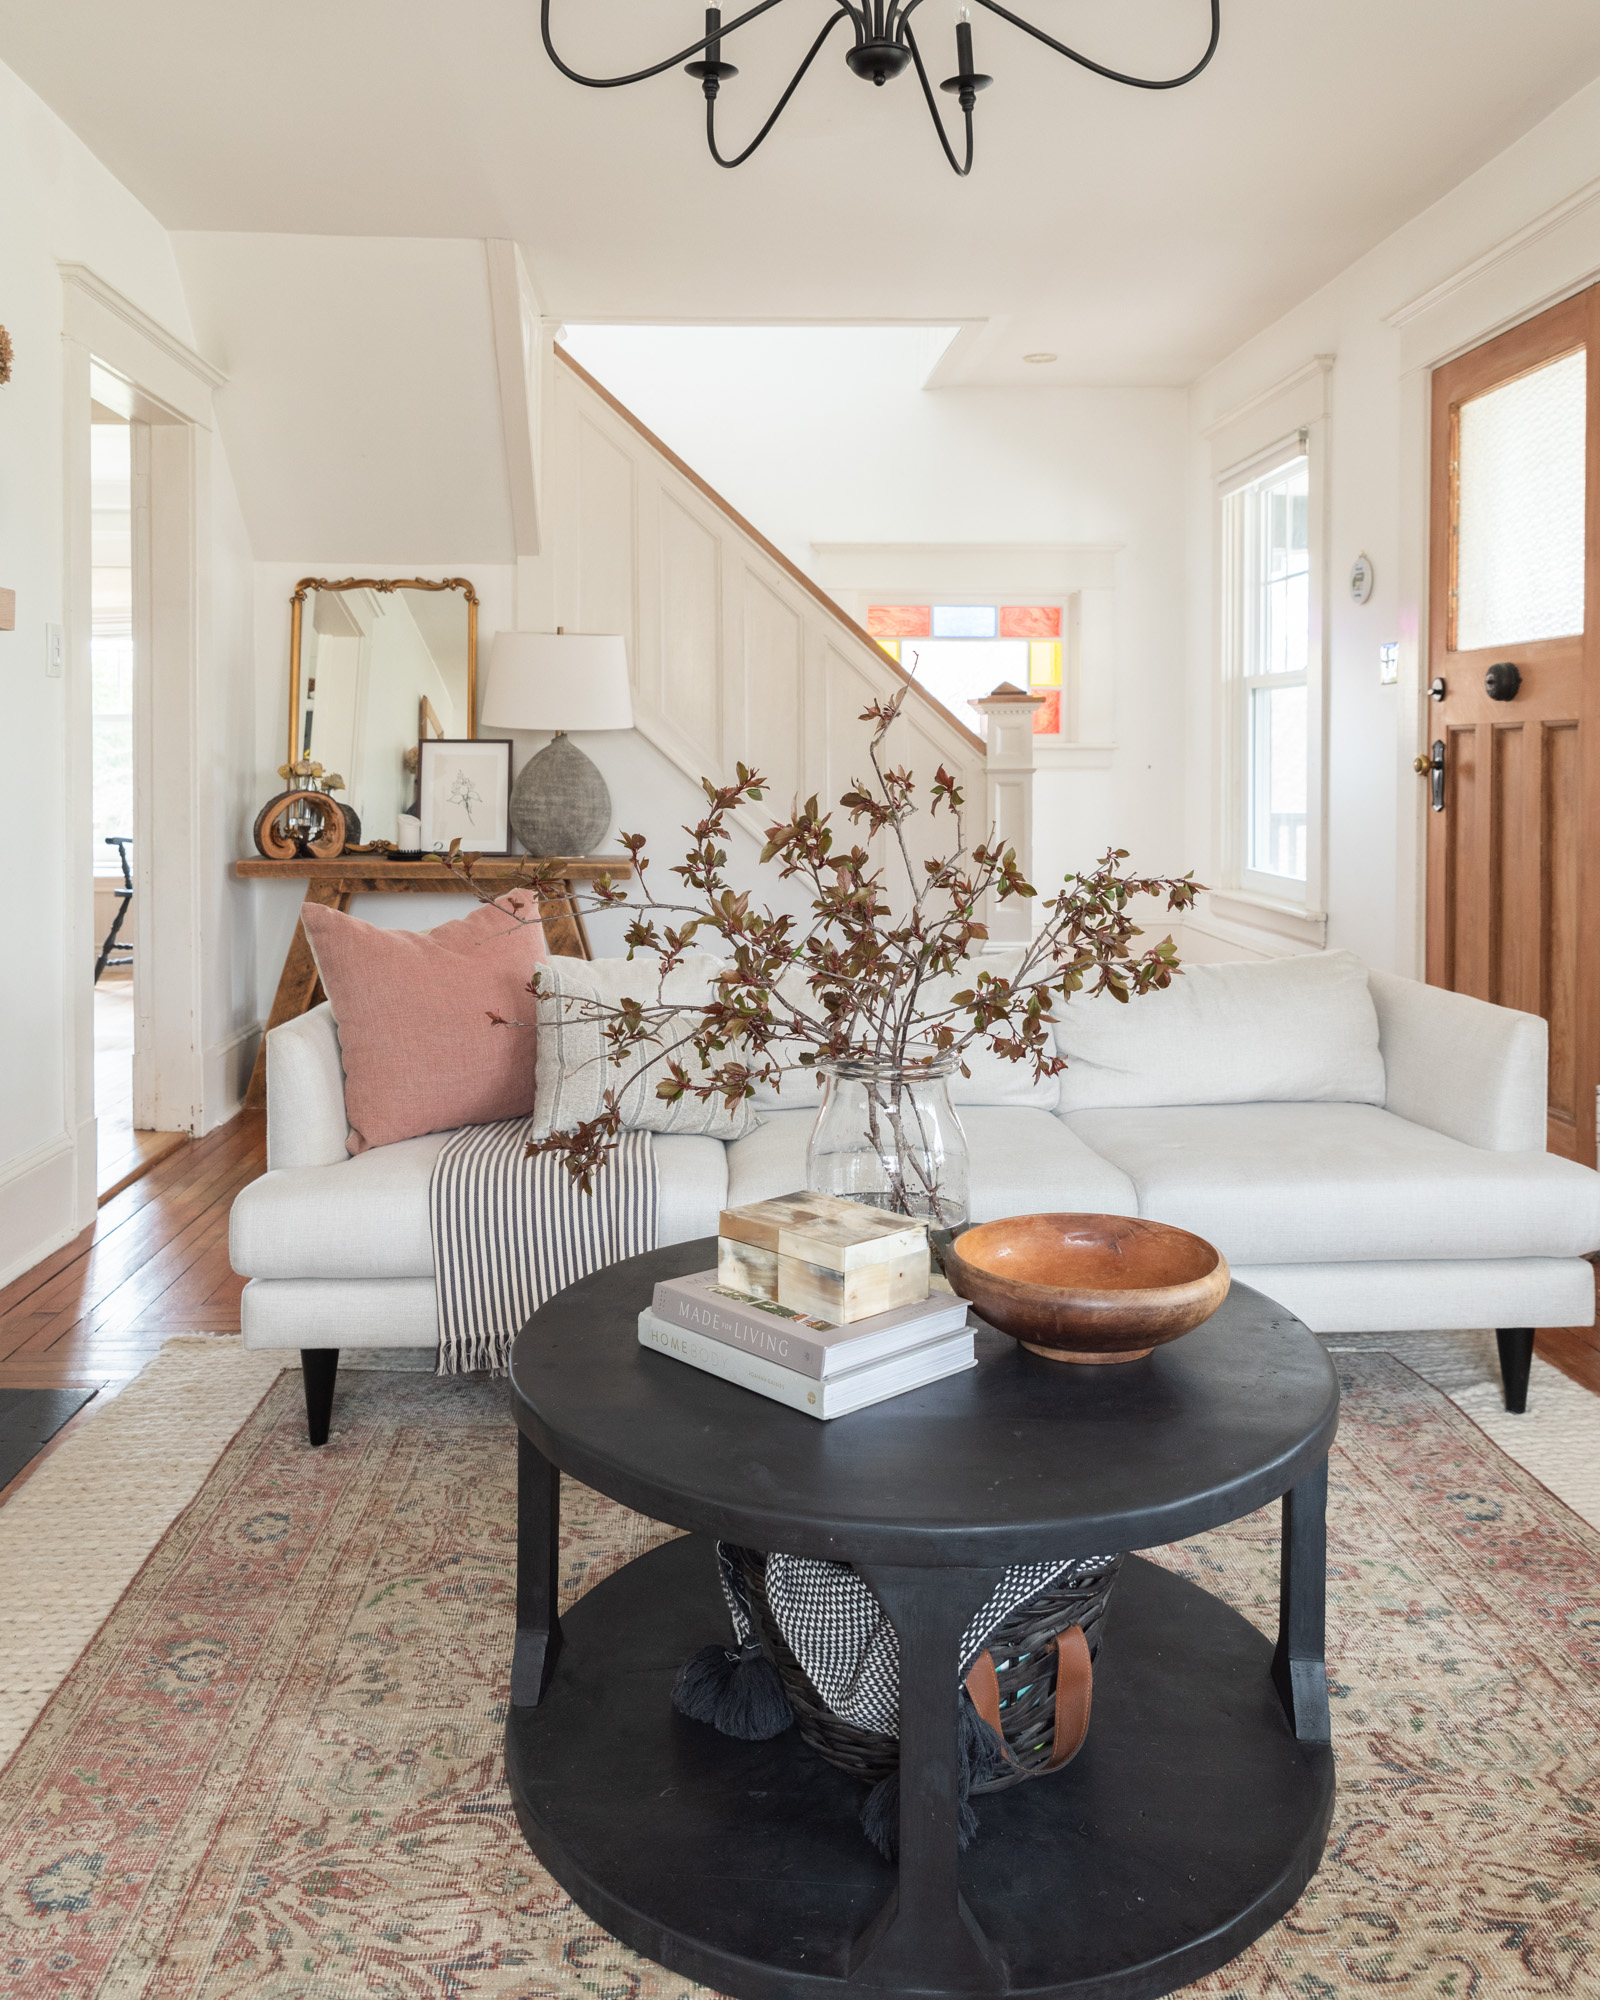 The Wild Decoelis | Four ways To Refresh Your Home For Spring | black round coffee table, cream sofa, vintage rug, flowering branches, wool rug, white craftsman living room.